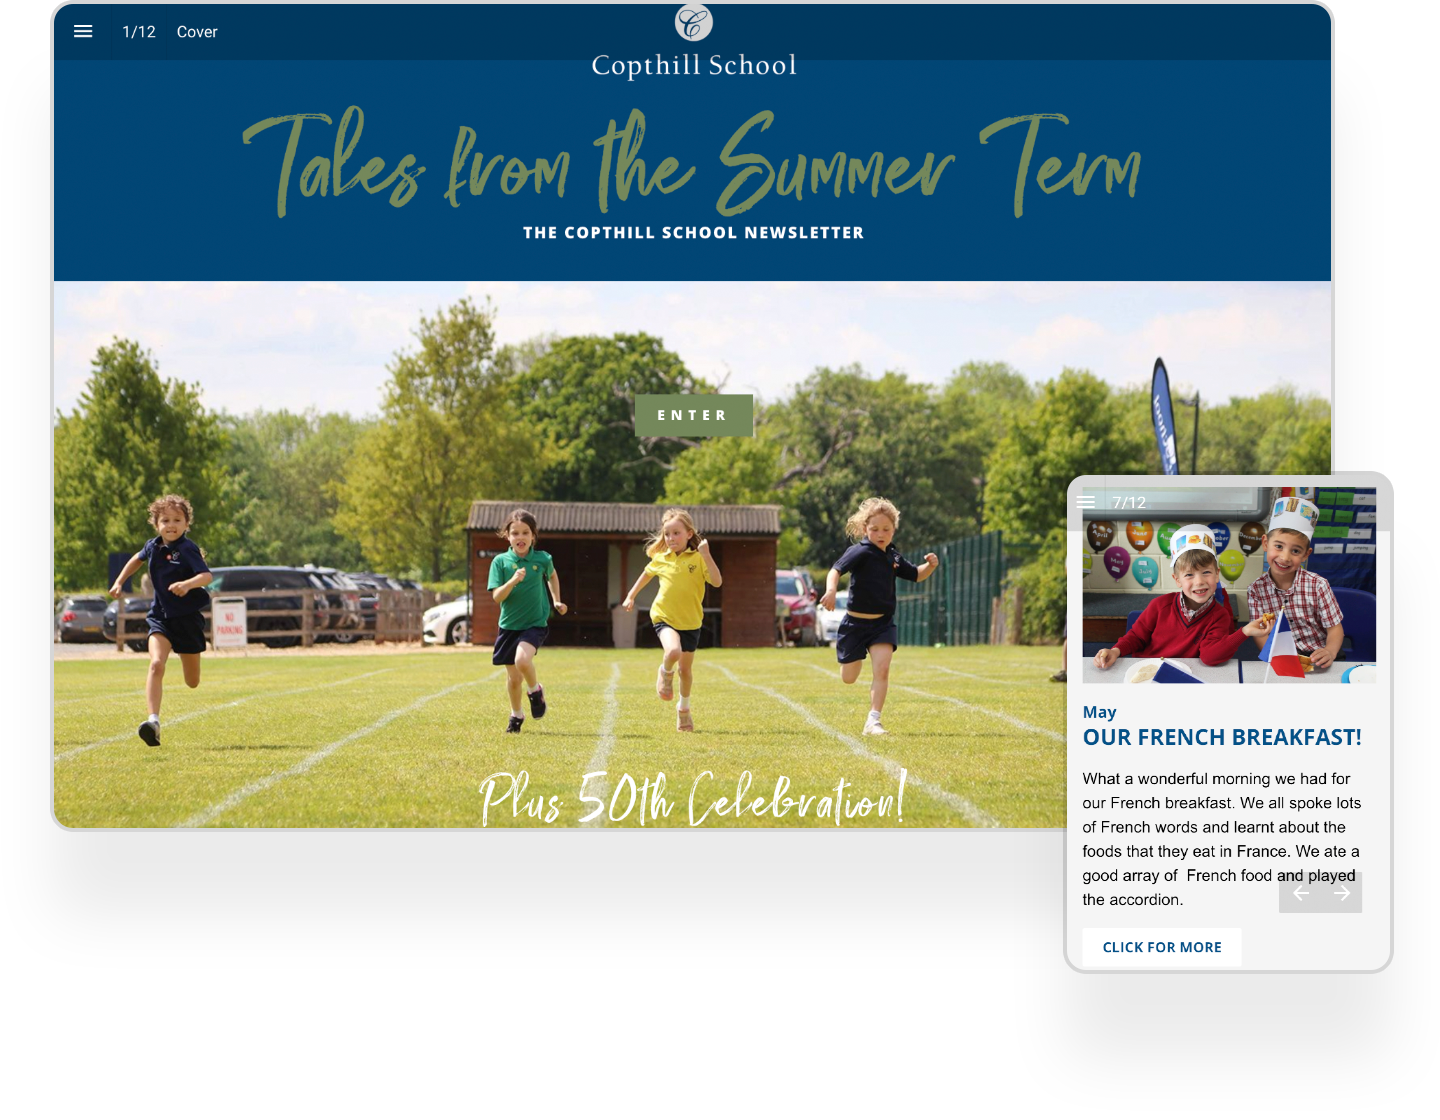 interactive-example-newsletter-copthillschool